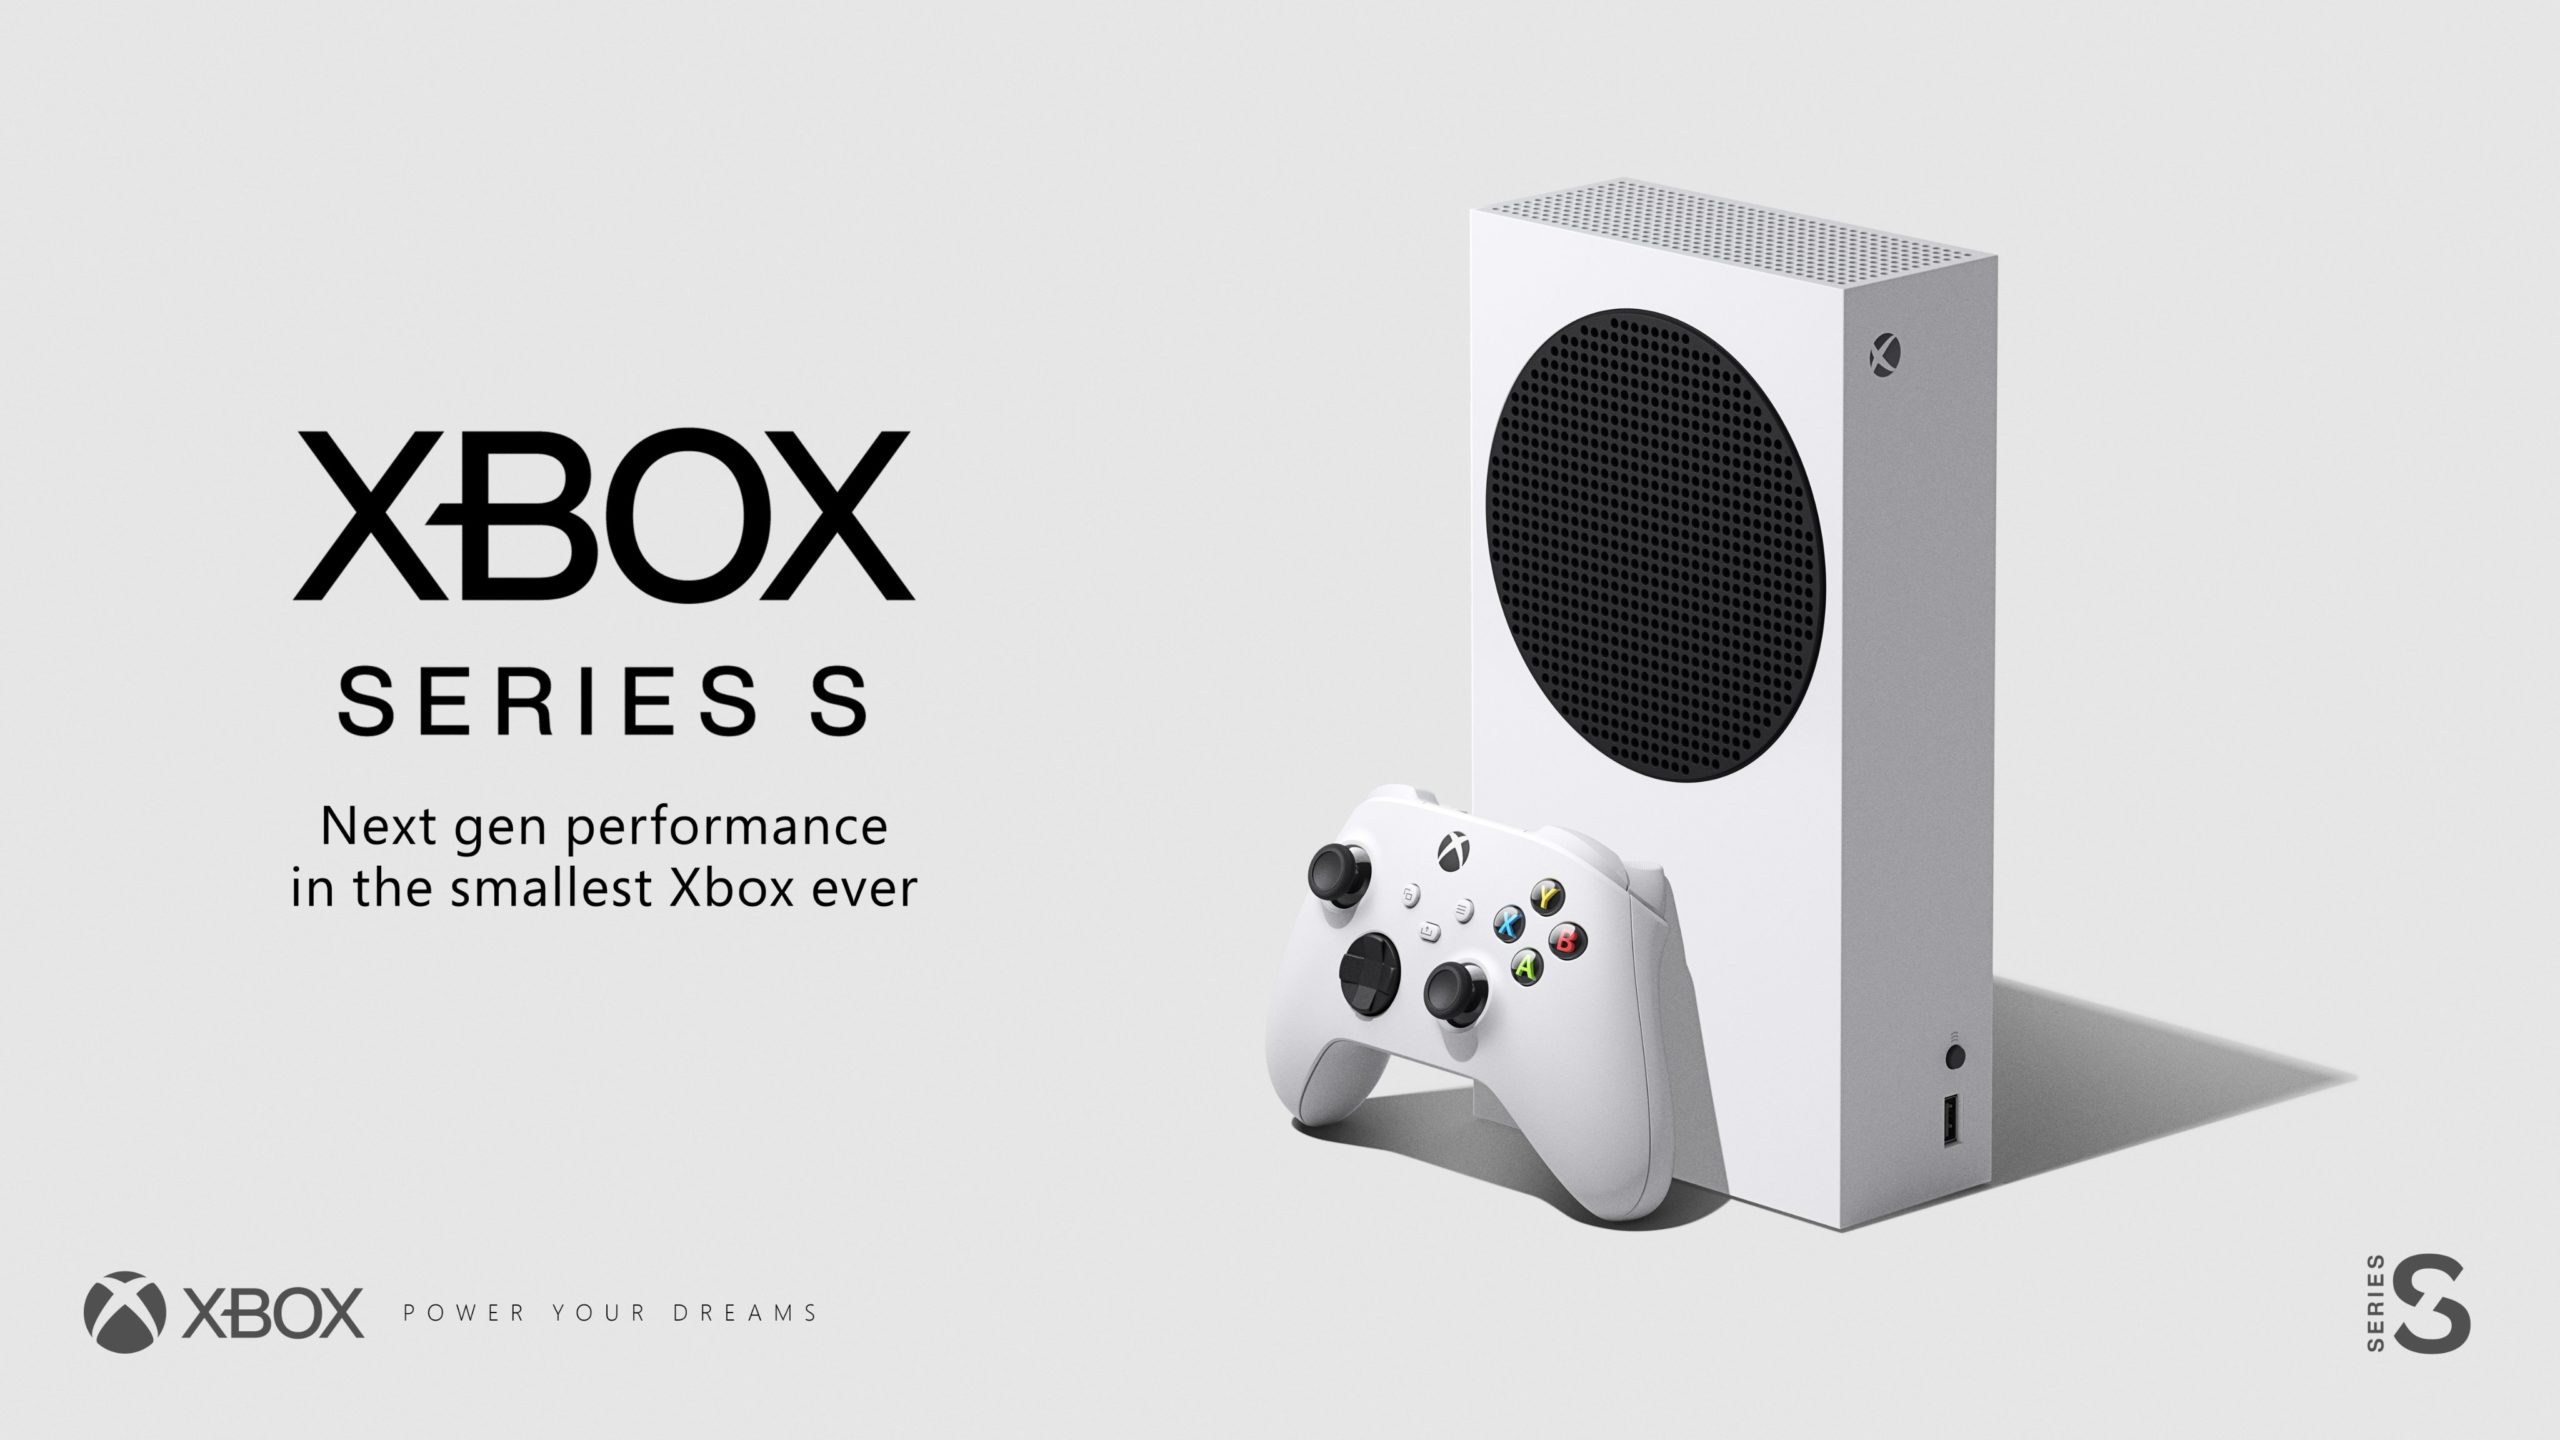 This is the Xbox Series S